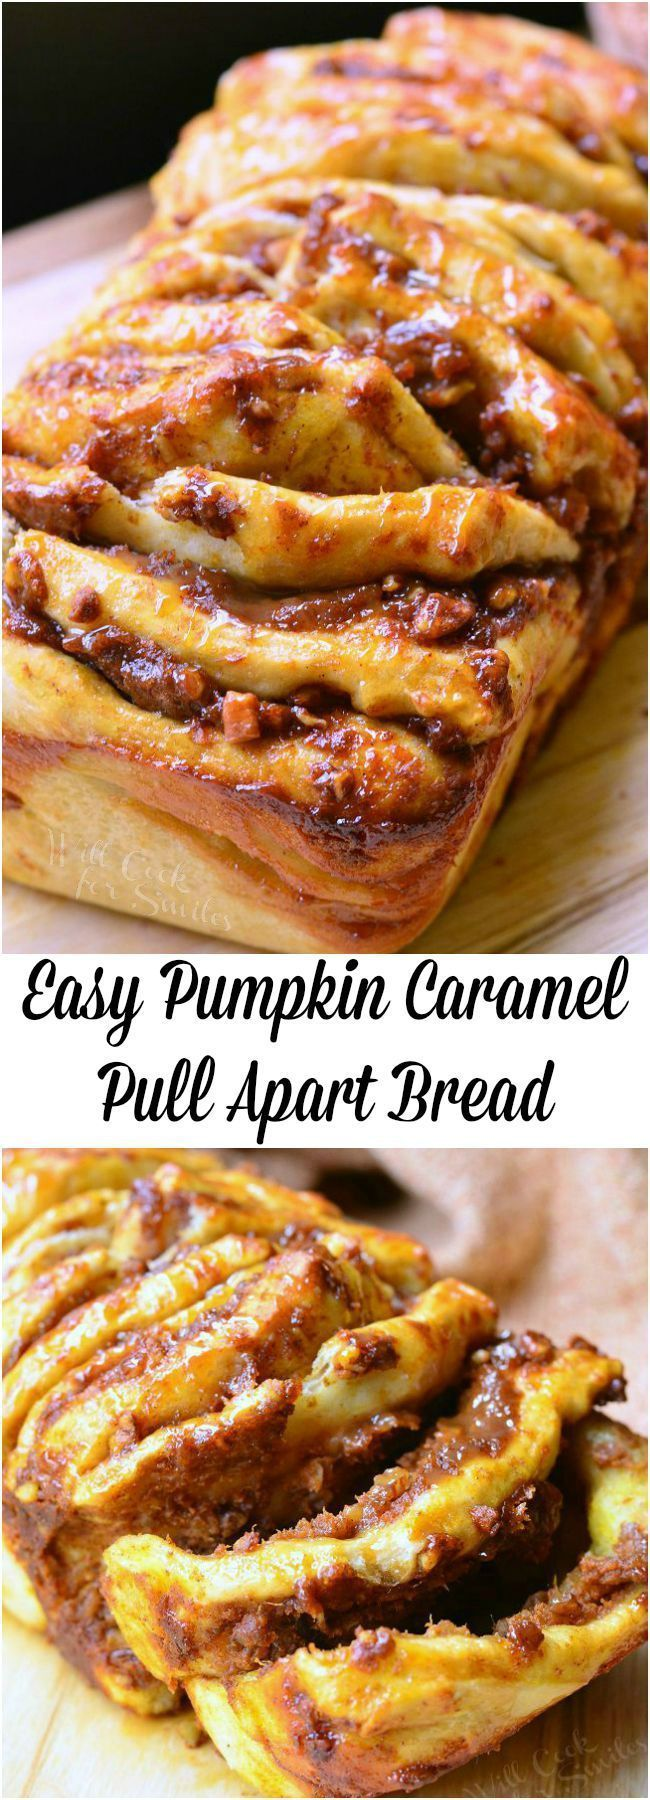 Easy Pumpkin Caramel Pull Apart Bread is super easy to make and an incredibly tasty pumpkin treat!